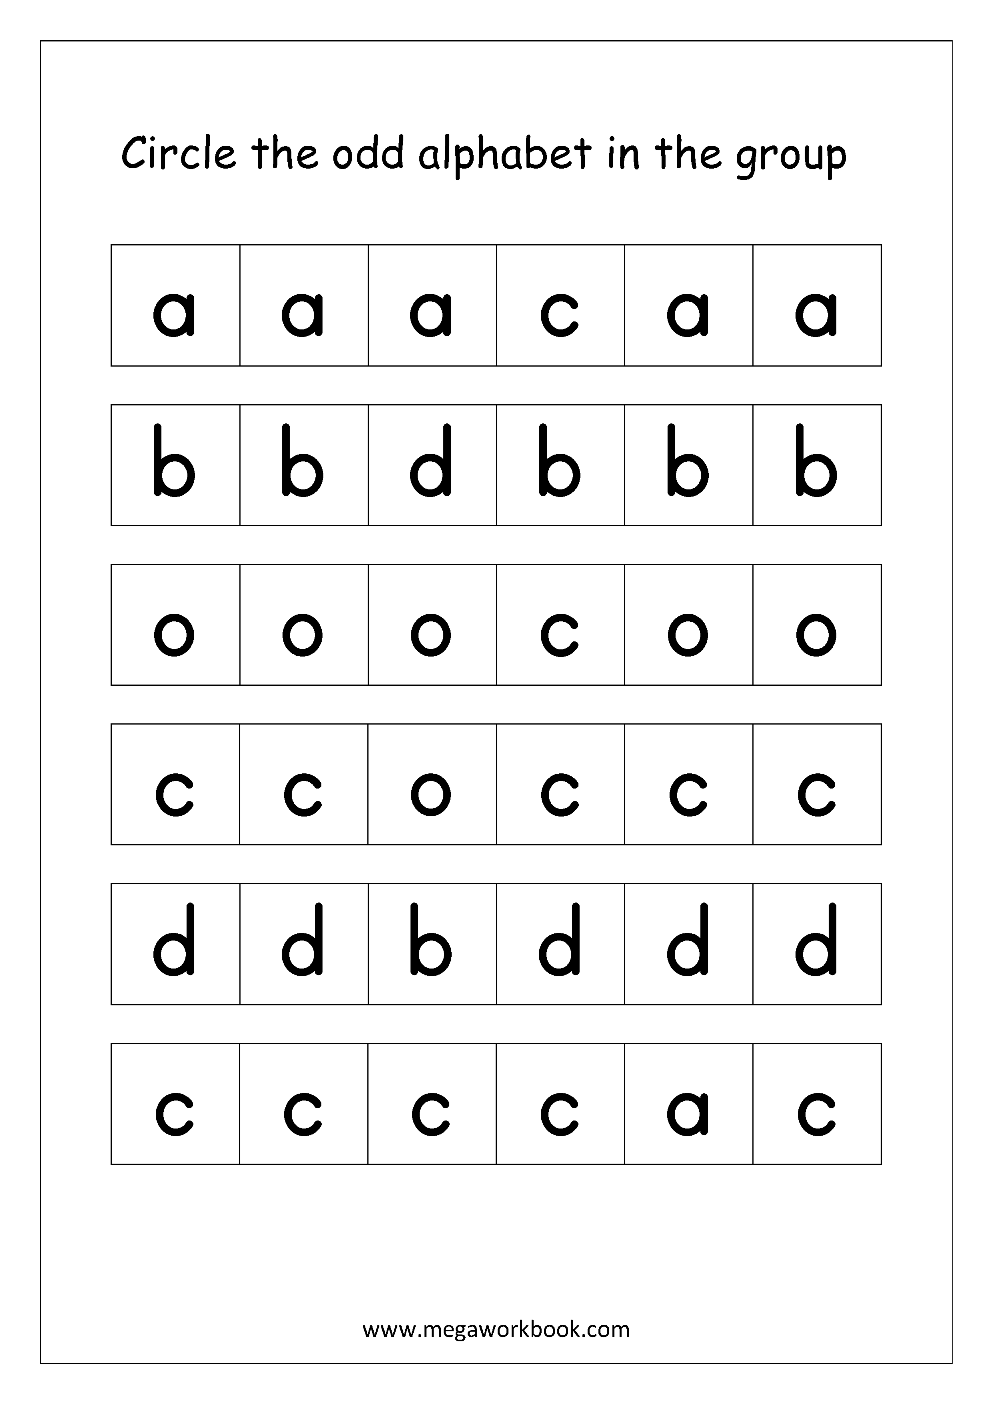 Free Printable English Worksheets for Kindergarten and Preschool ...